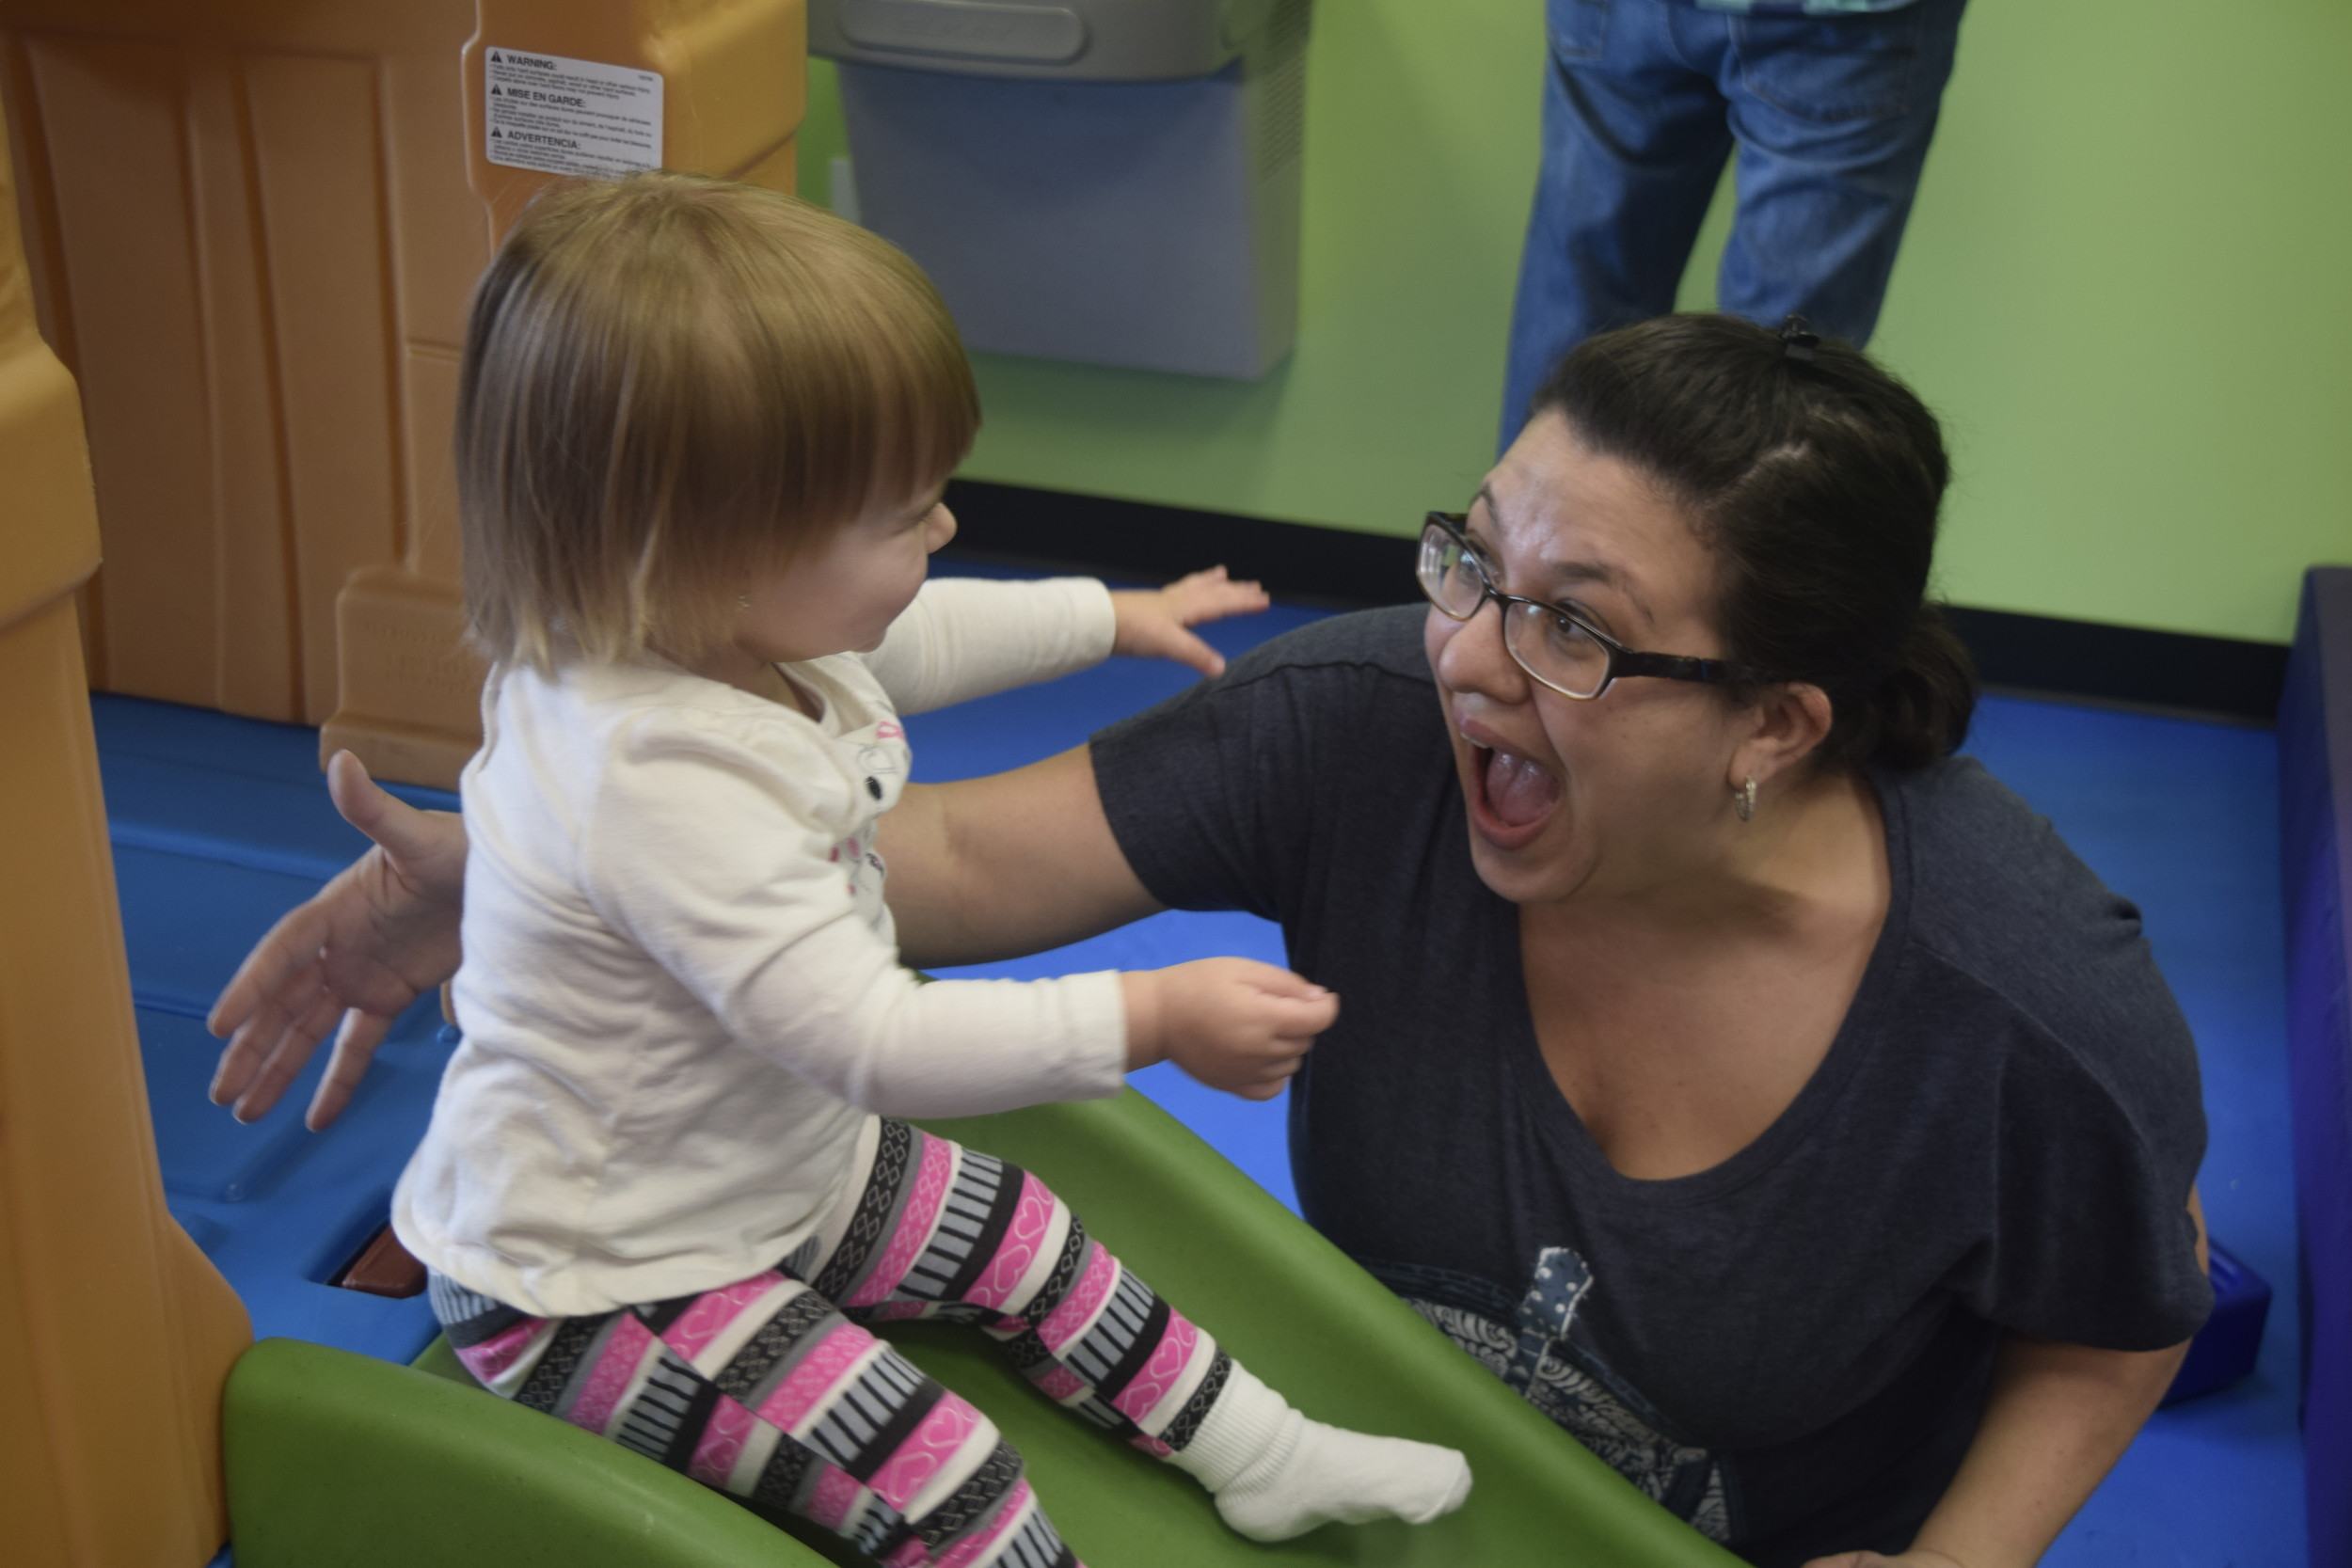 Lauren Kircher helped her 1-year-old daughter, Kaylee, down the slide at Sensory Beans.